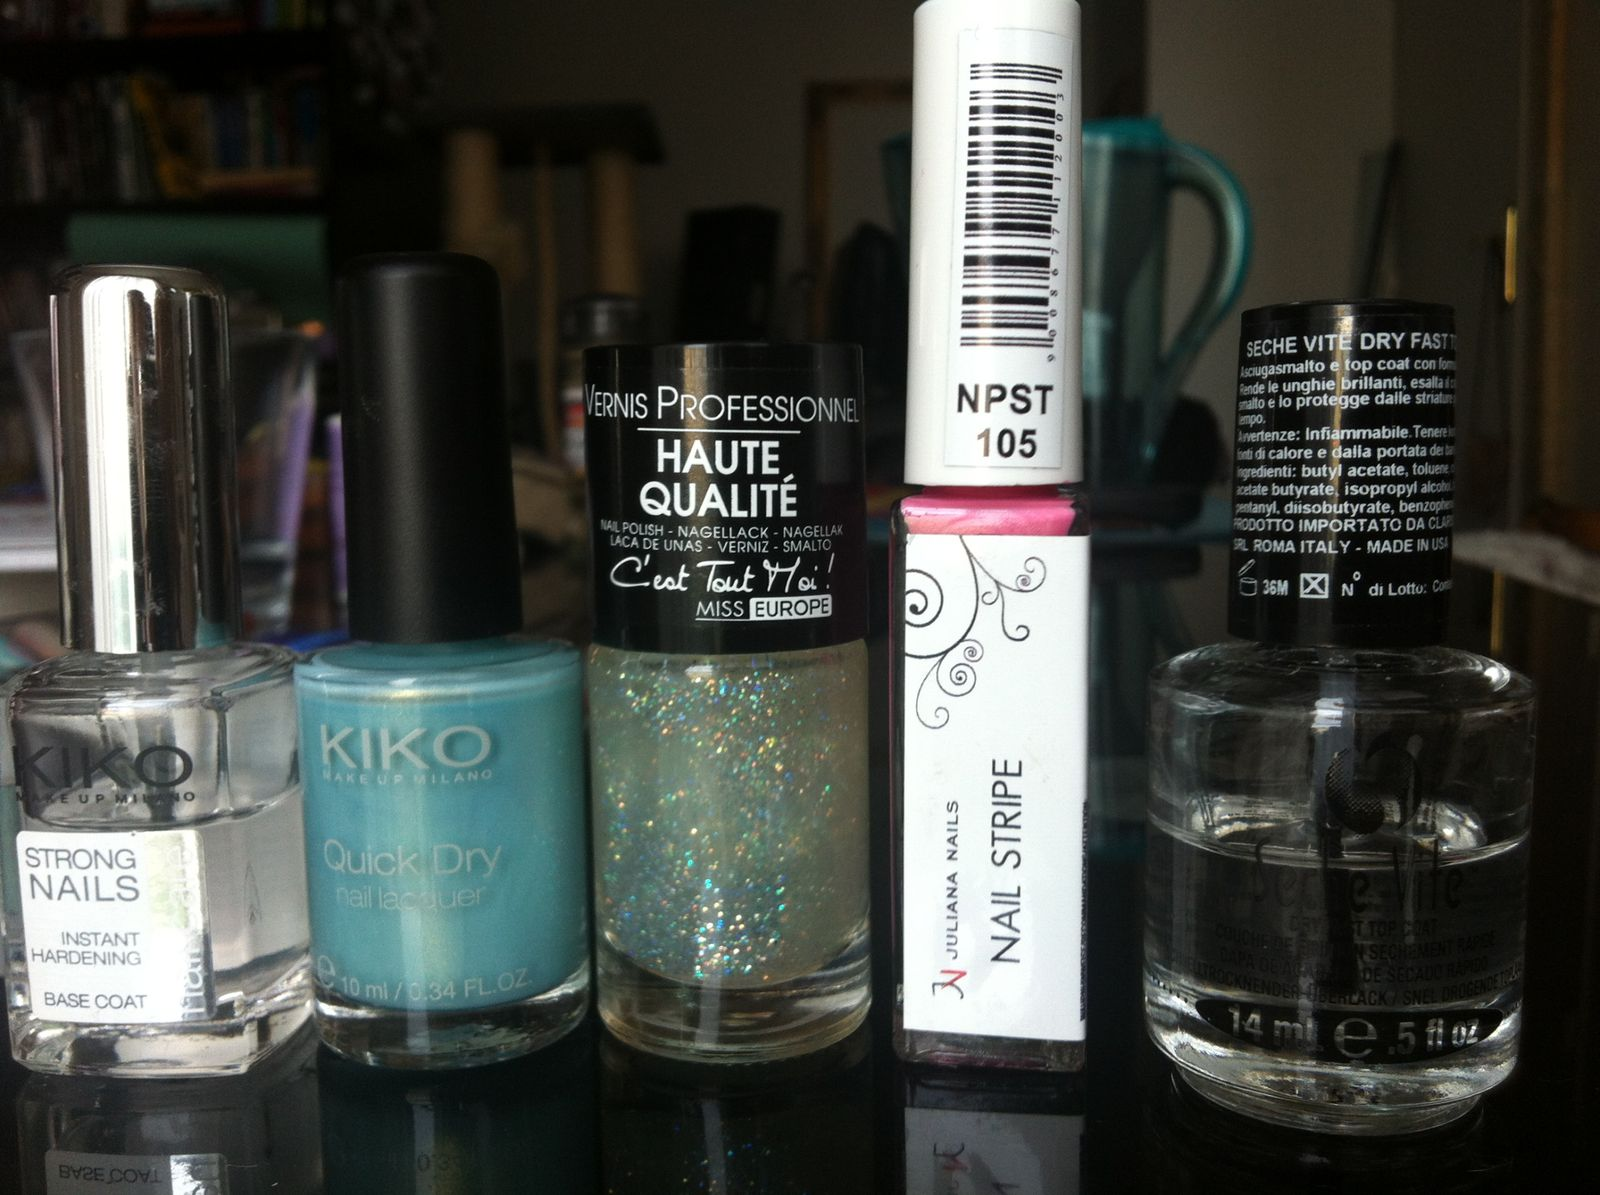 les vernis utilisés, la base : kiko strong nails puis kiko quick dry 834, miss europe n°26, le liner juliana nails 105 et le sèche vite indispensable mais qui pique le nez